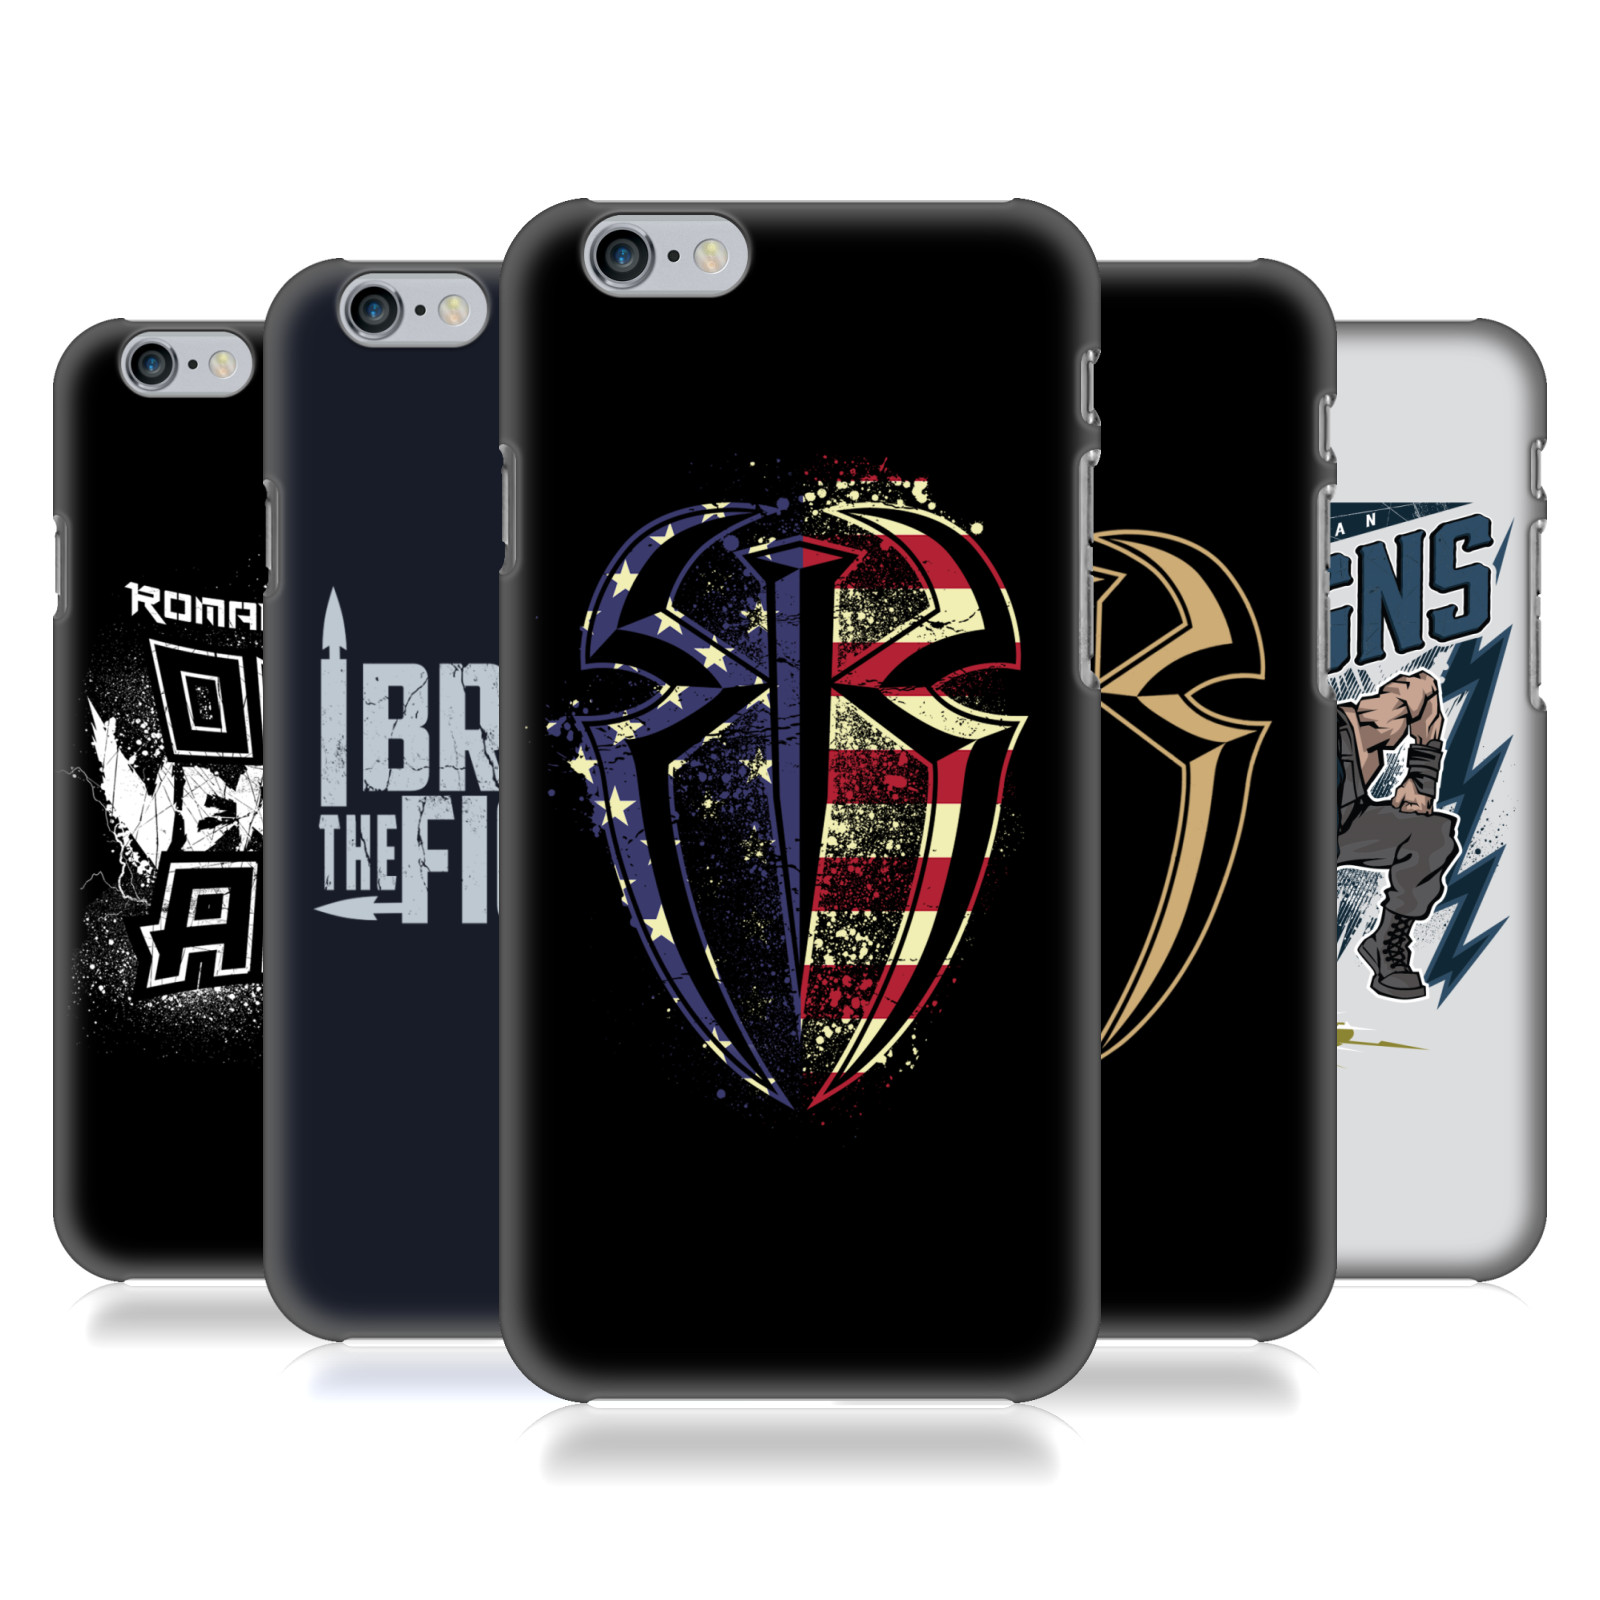 wwe iphone 6 case